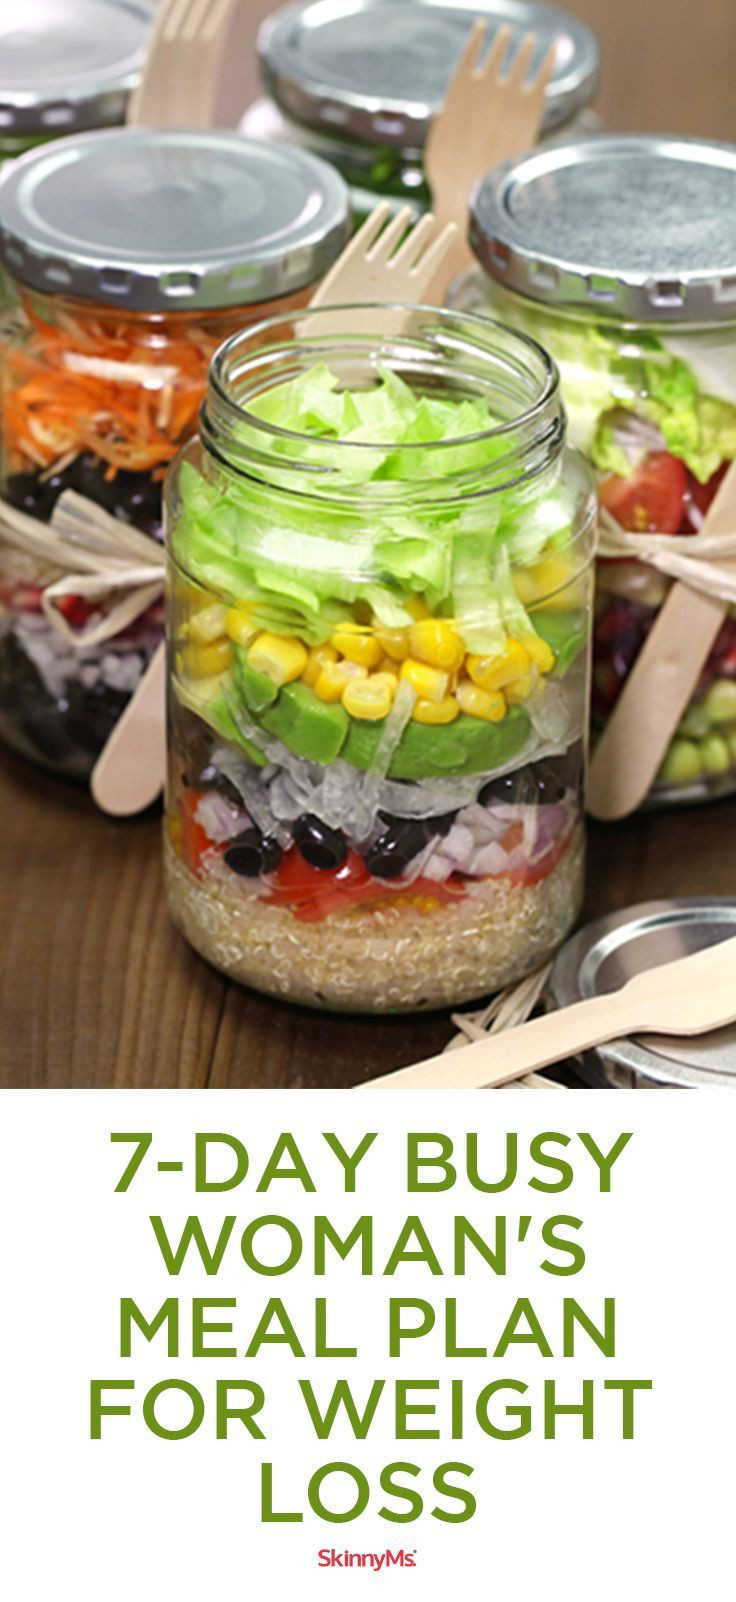 Healthy Meal Recipes For Weight Loss  9069 best images about Skinny Ms Eats on Pinterest